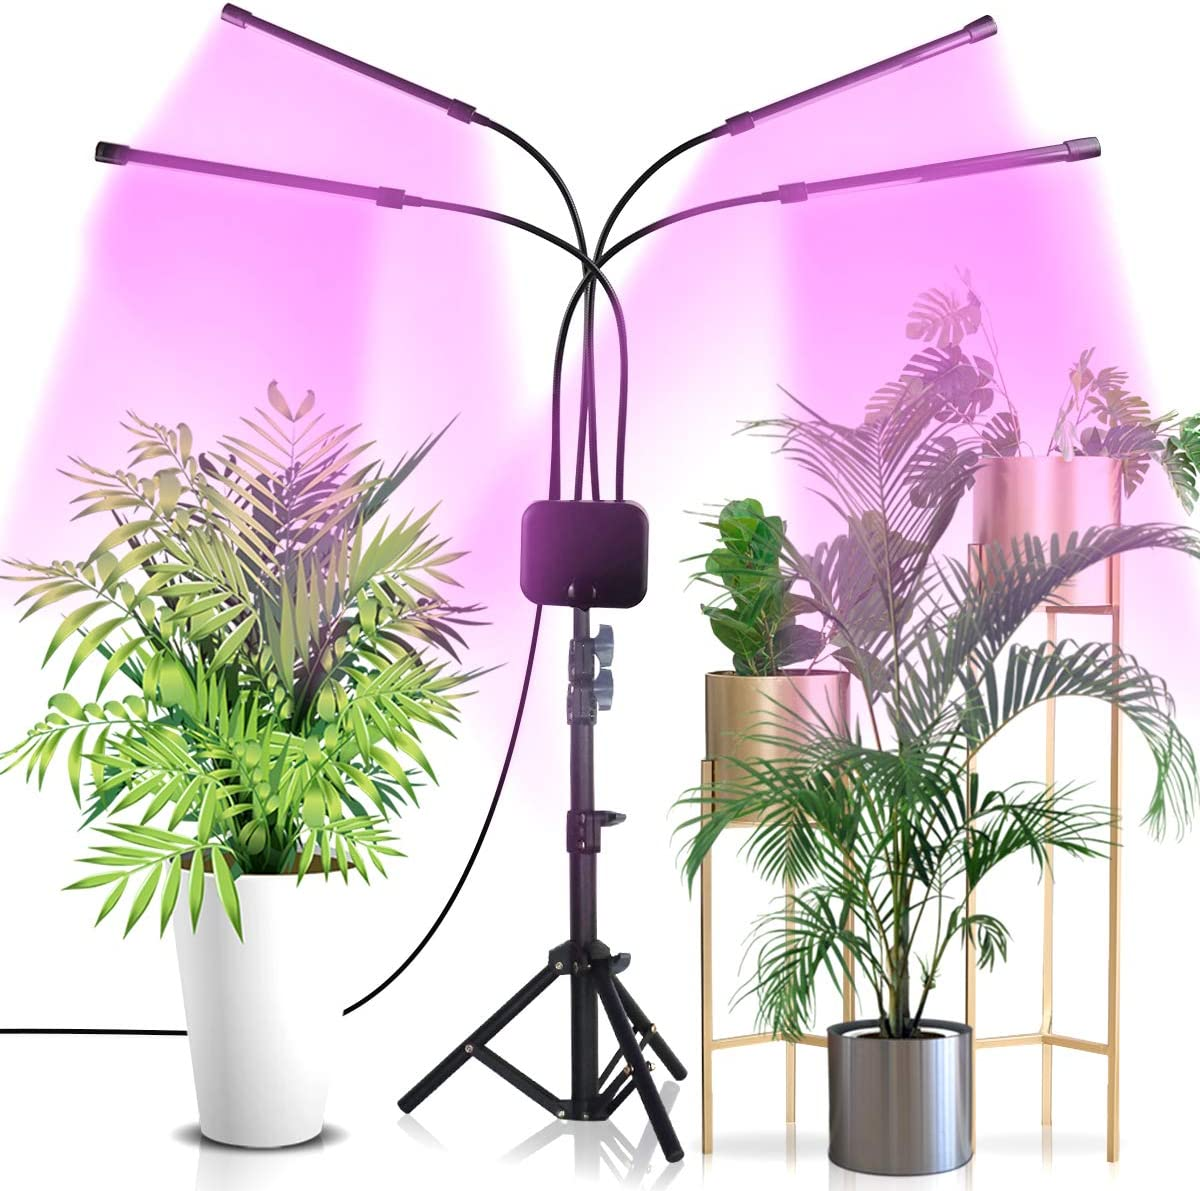 Bozily Led Grow Lights for Indoor Plants Full Spectrum 300W, Sunlike Plant Growing Light Fixture Support Outer for Indoor Plants Seedlings,Growing,Blooming and Fruiting